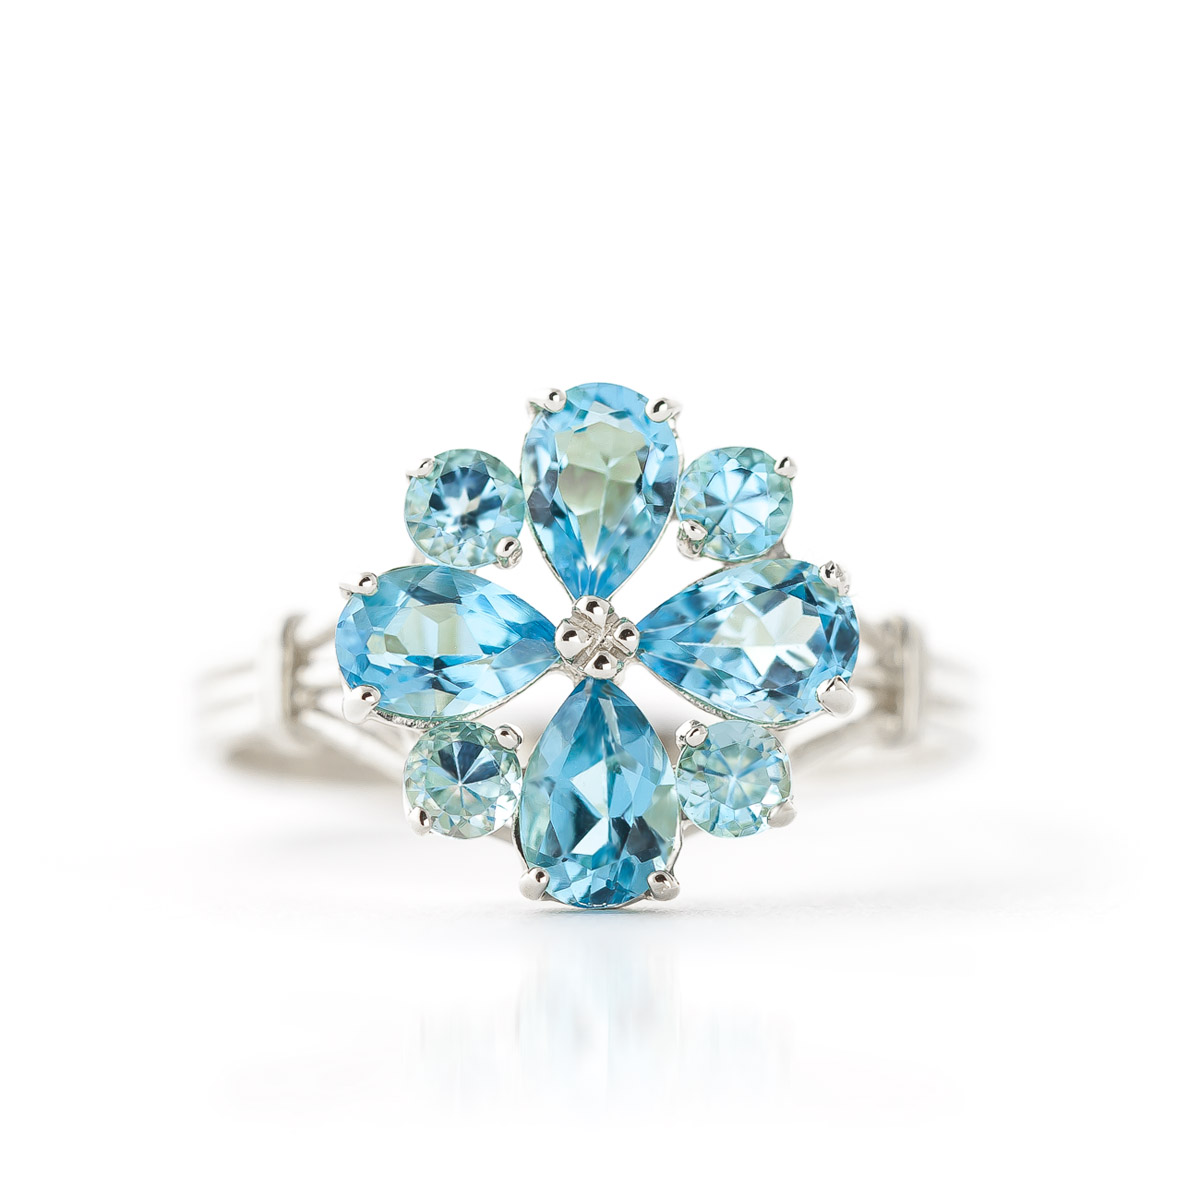 Blue Topaz Sunflower Cluster Ring 2.43 ctw in Sterling Silver